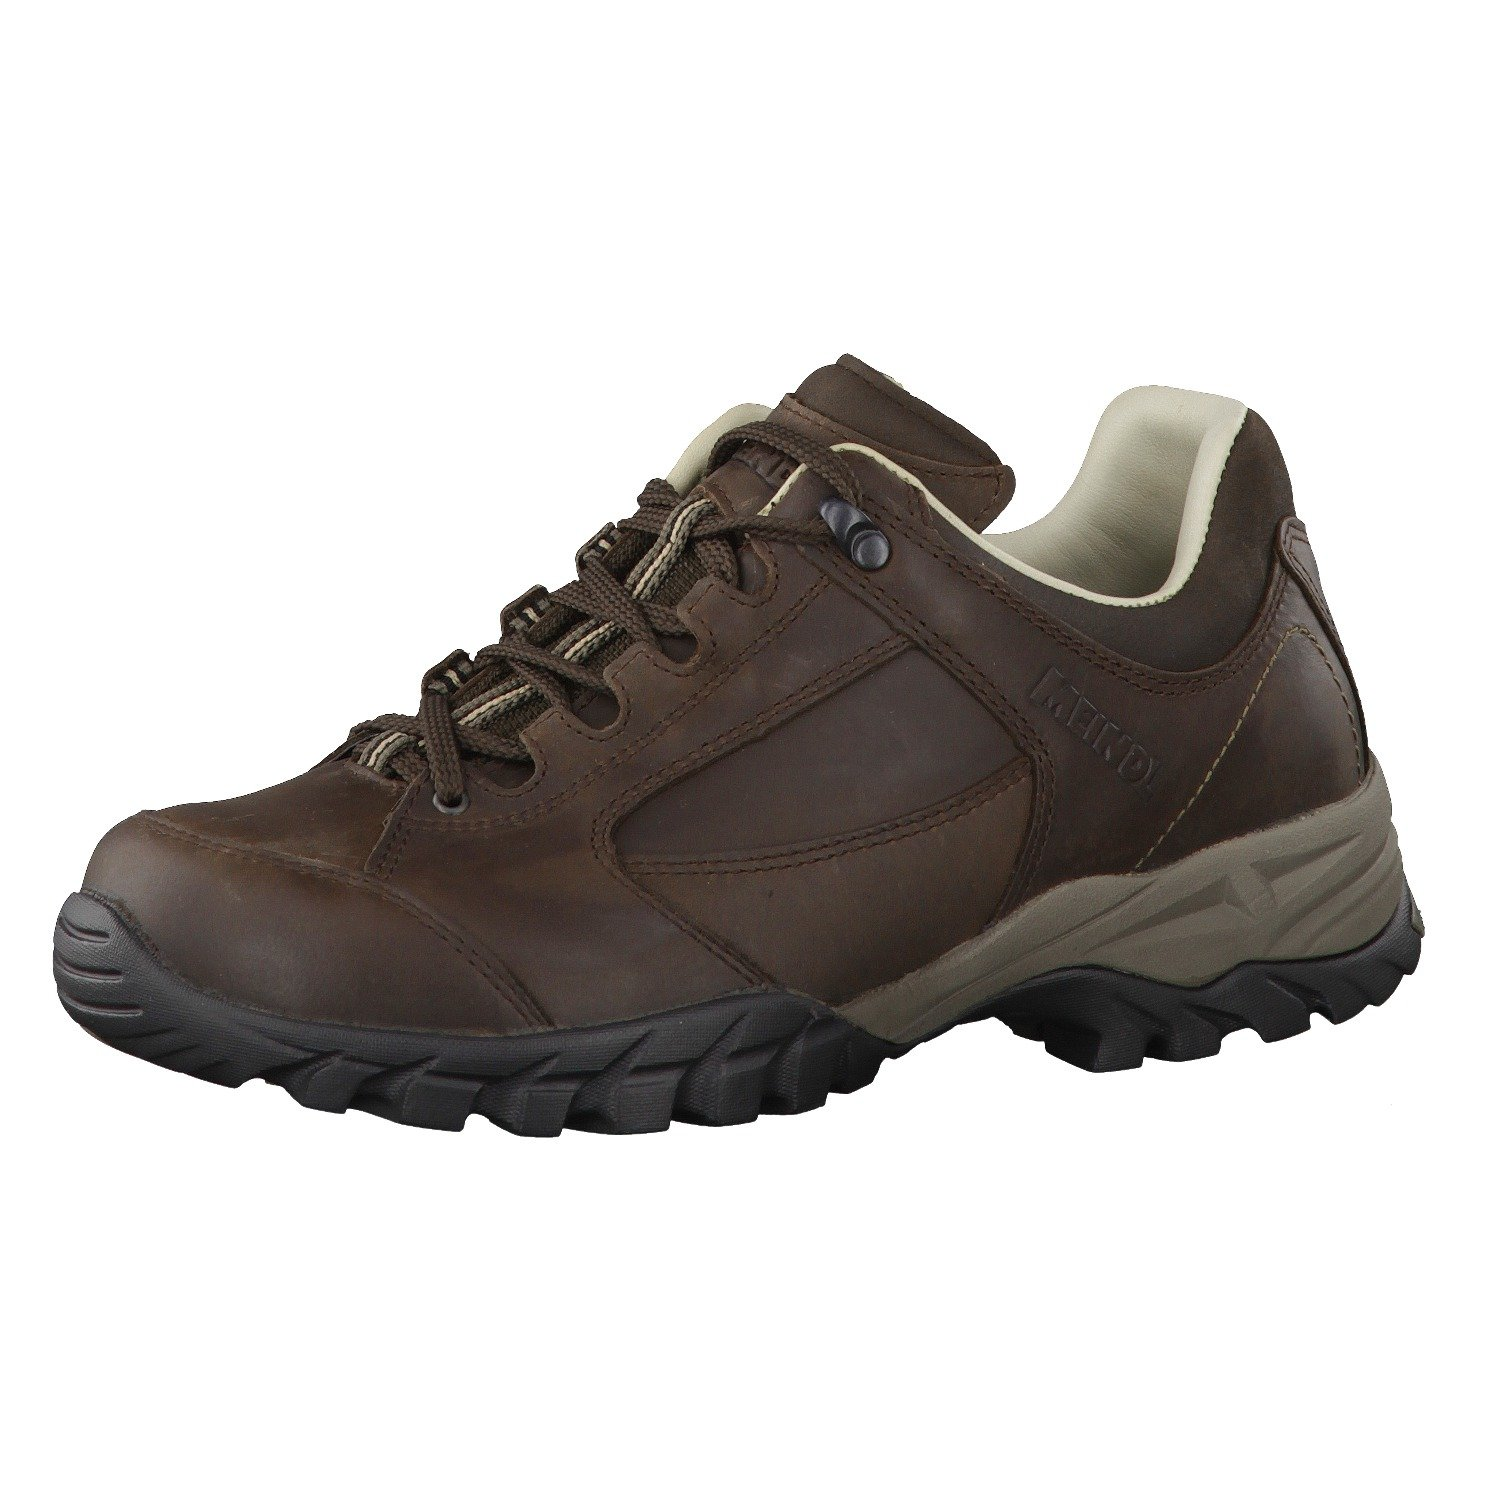 Meindl Men's Shoes Lugano 5169